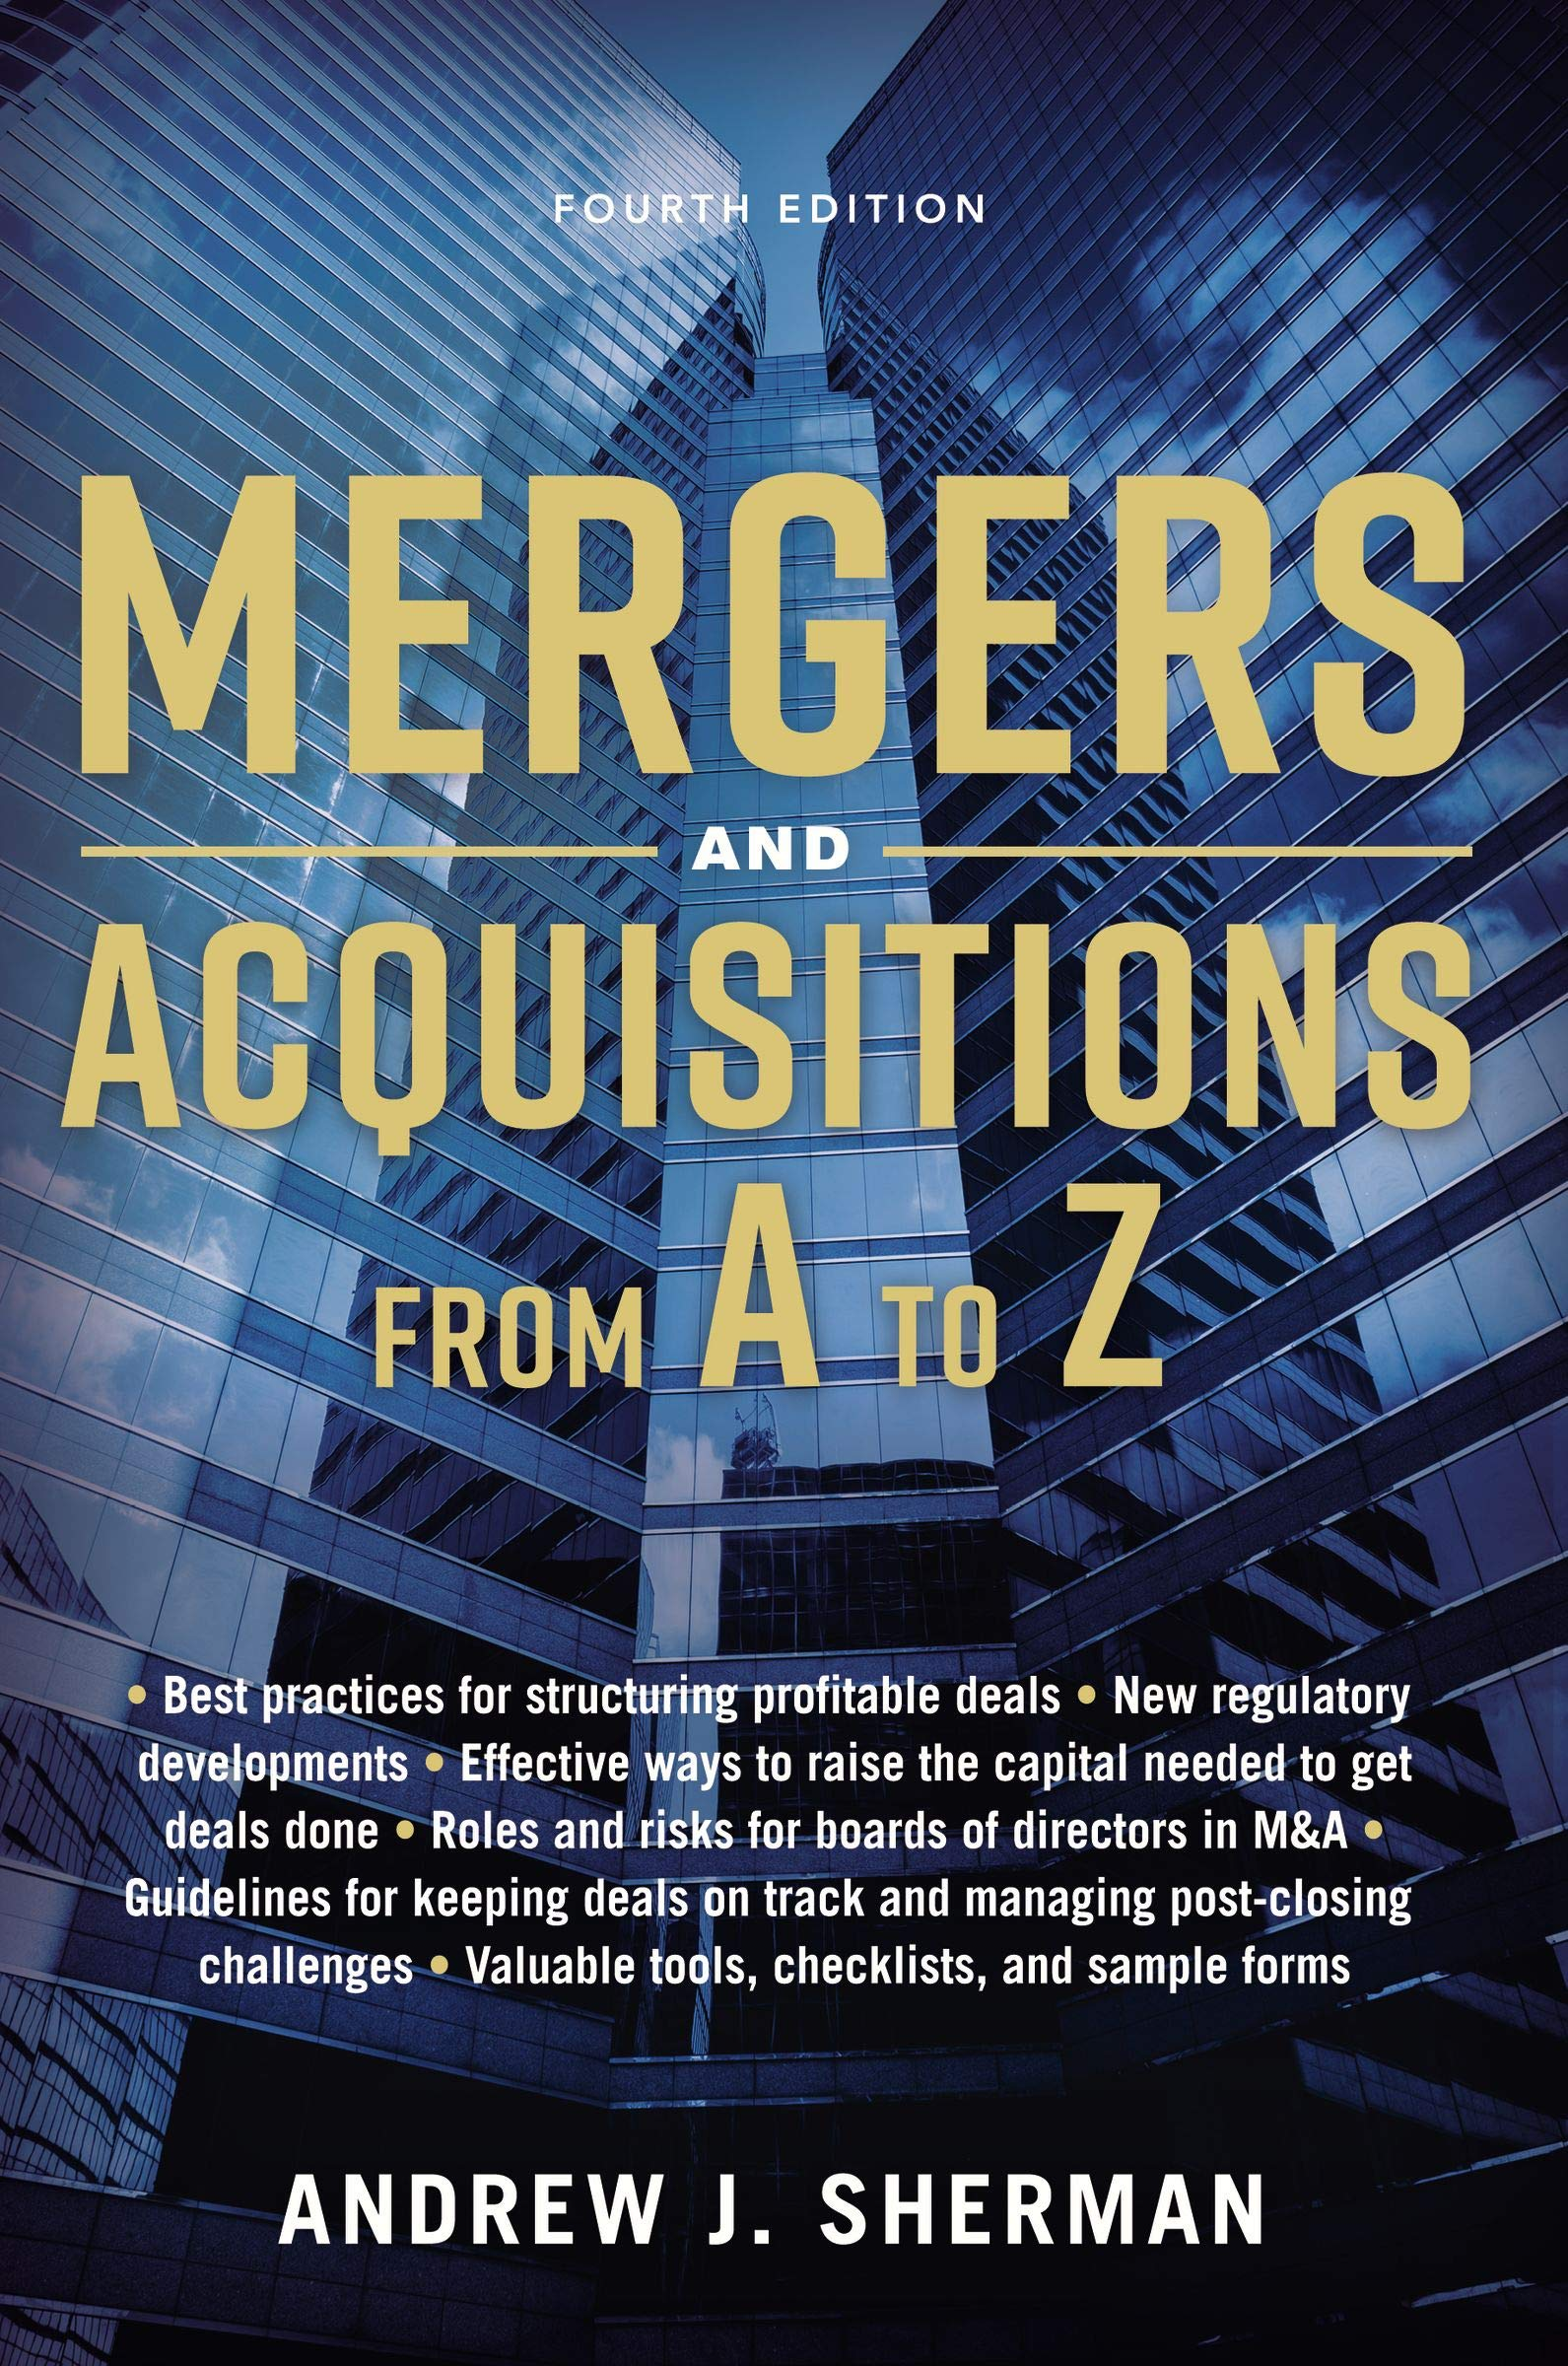 american airlines mergers and acquisitions